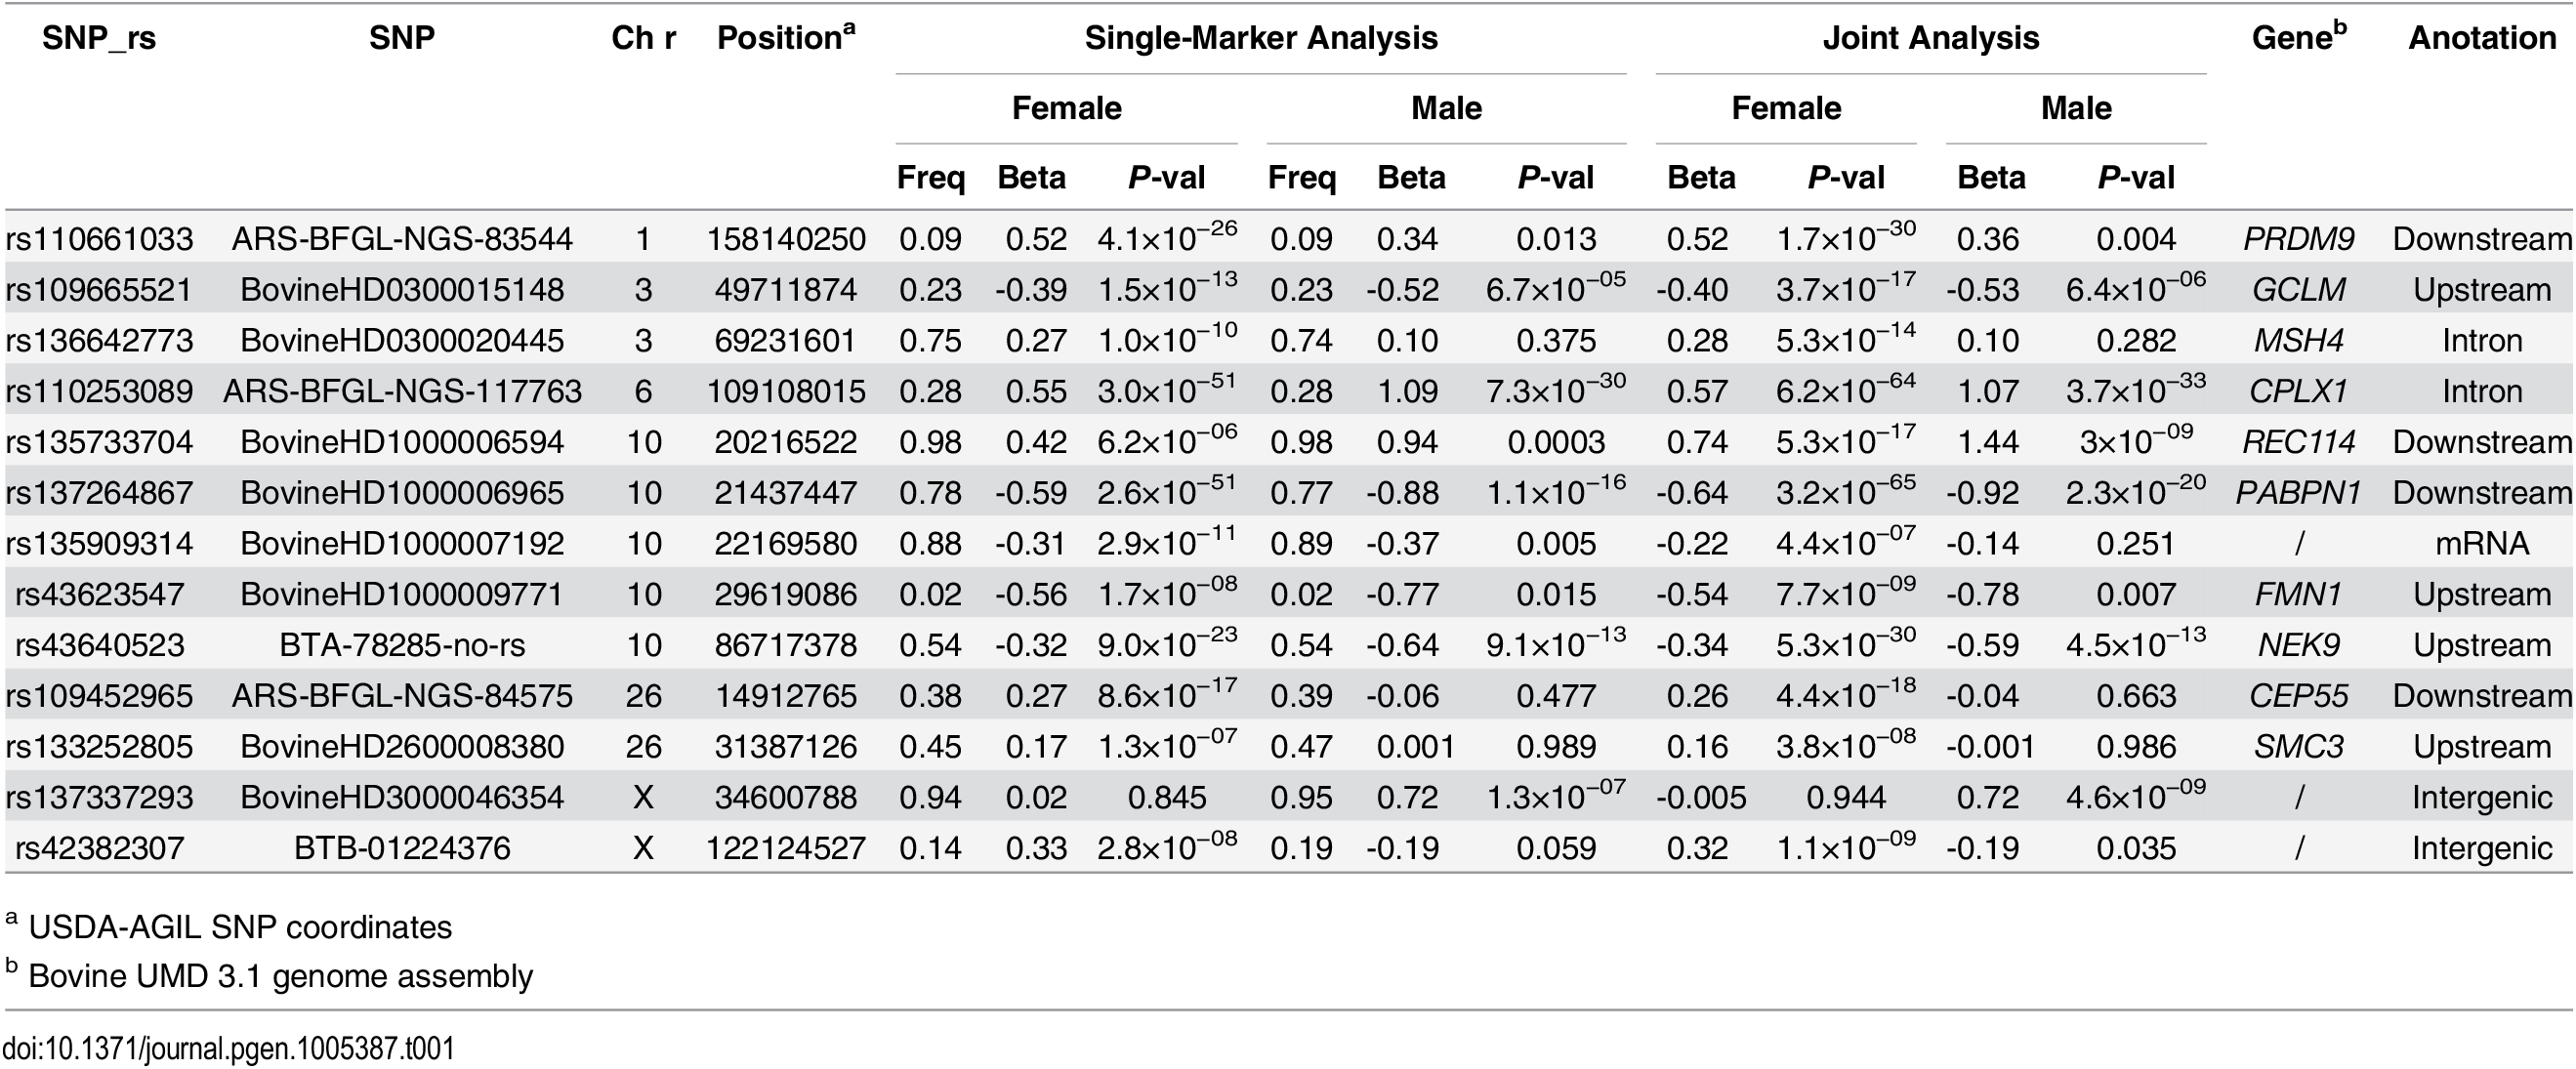 Independent SNPs associated with genome-wide recombination rate in females and males.